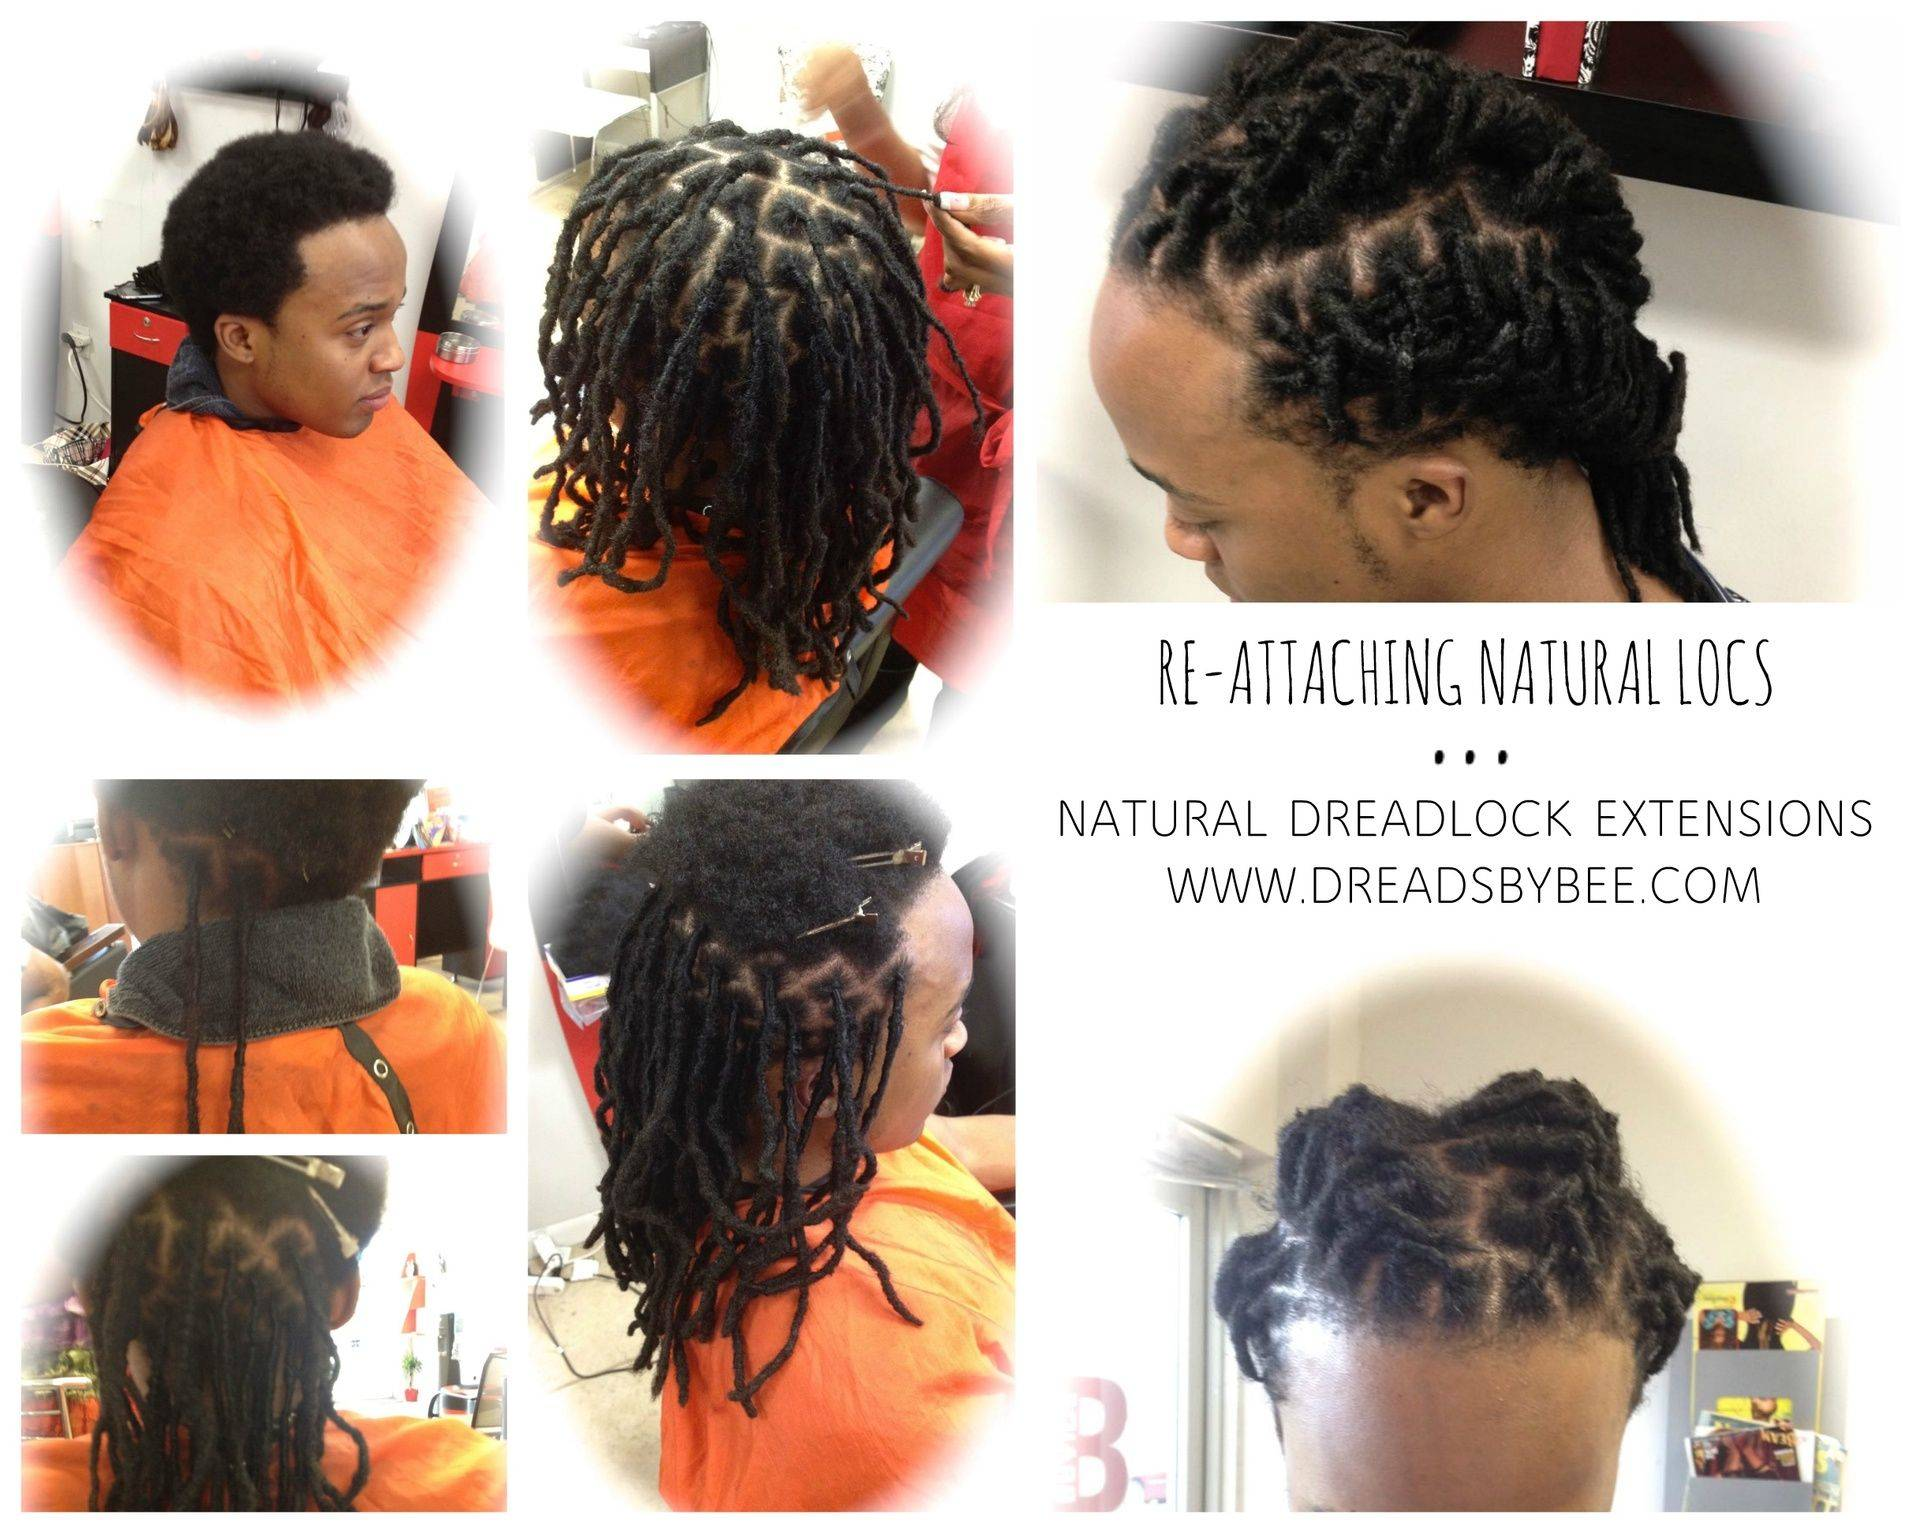 Instantloc Dread extensions used to repair natural locs and create a bridge for bald areas to fill in full head of Locs.